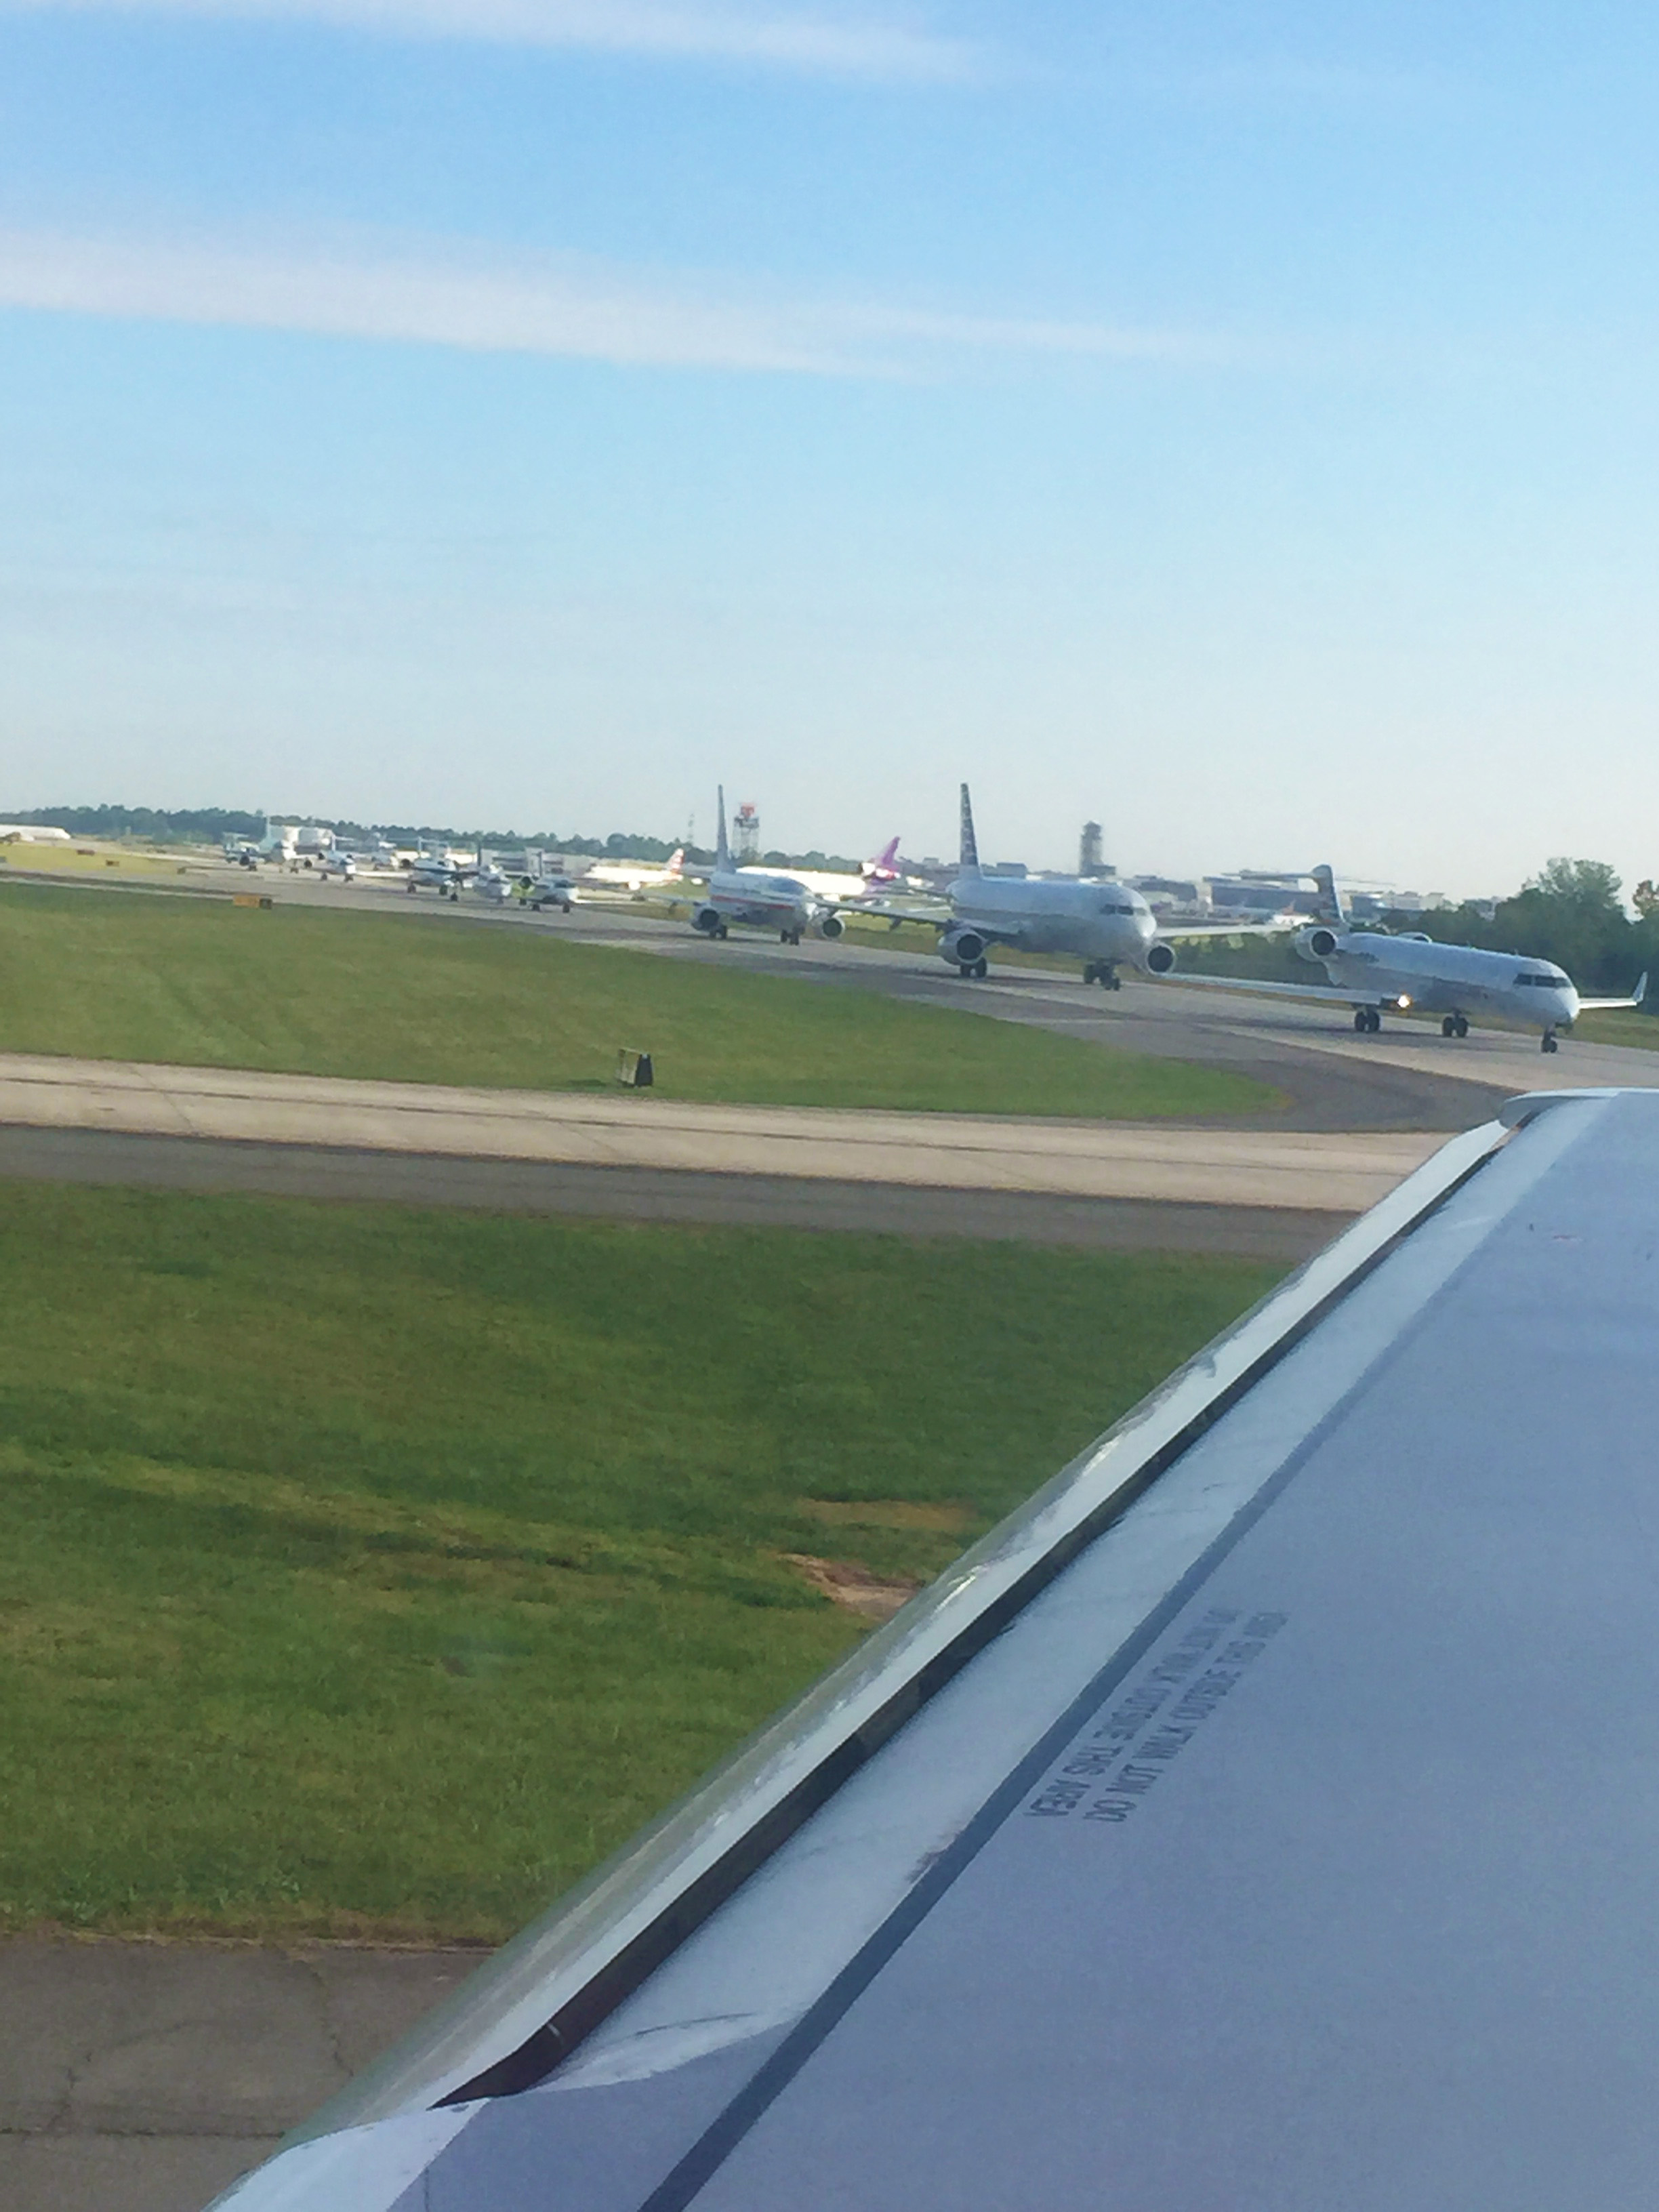 Ever been in an Airplane traffic jam? We have!!!